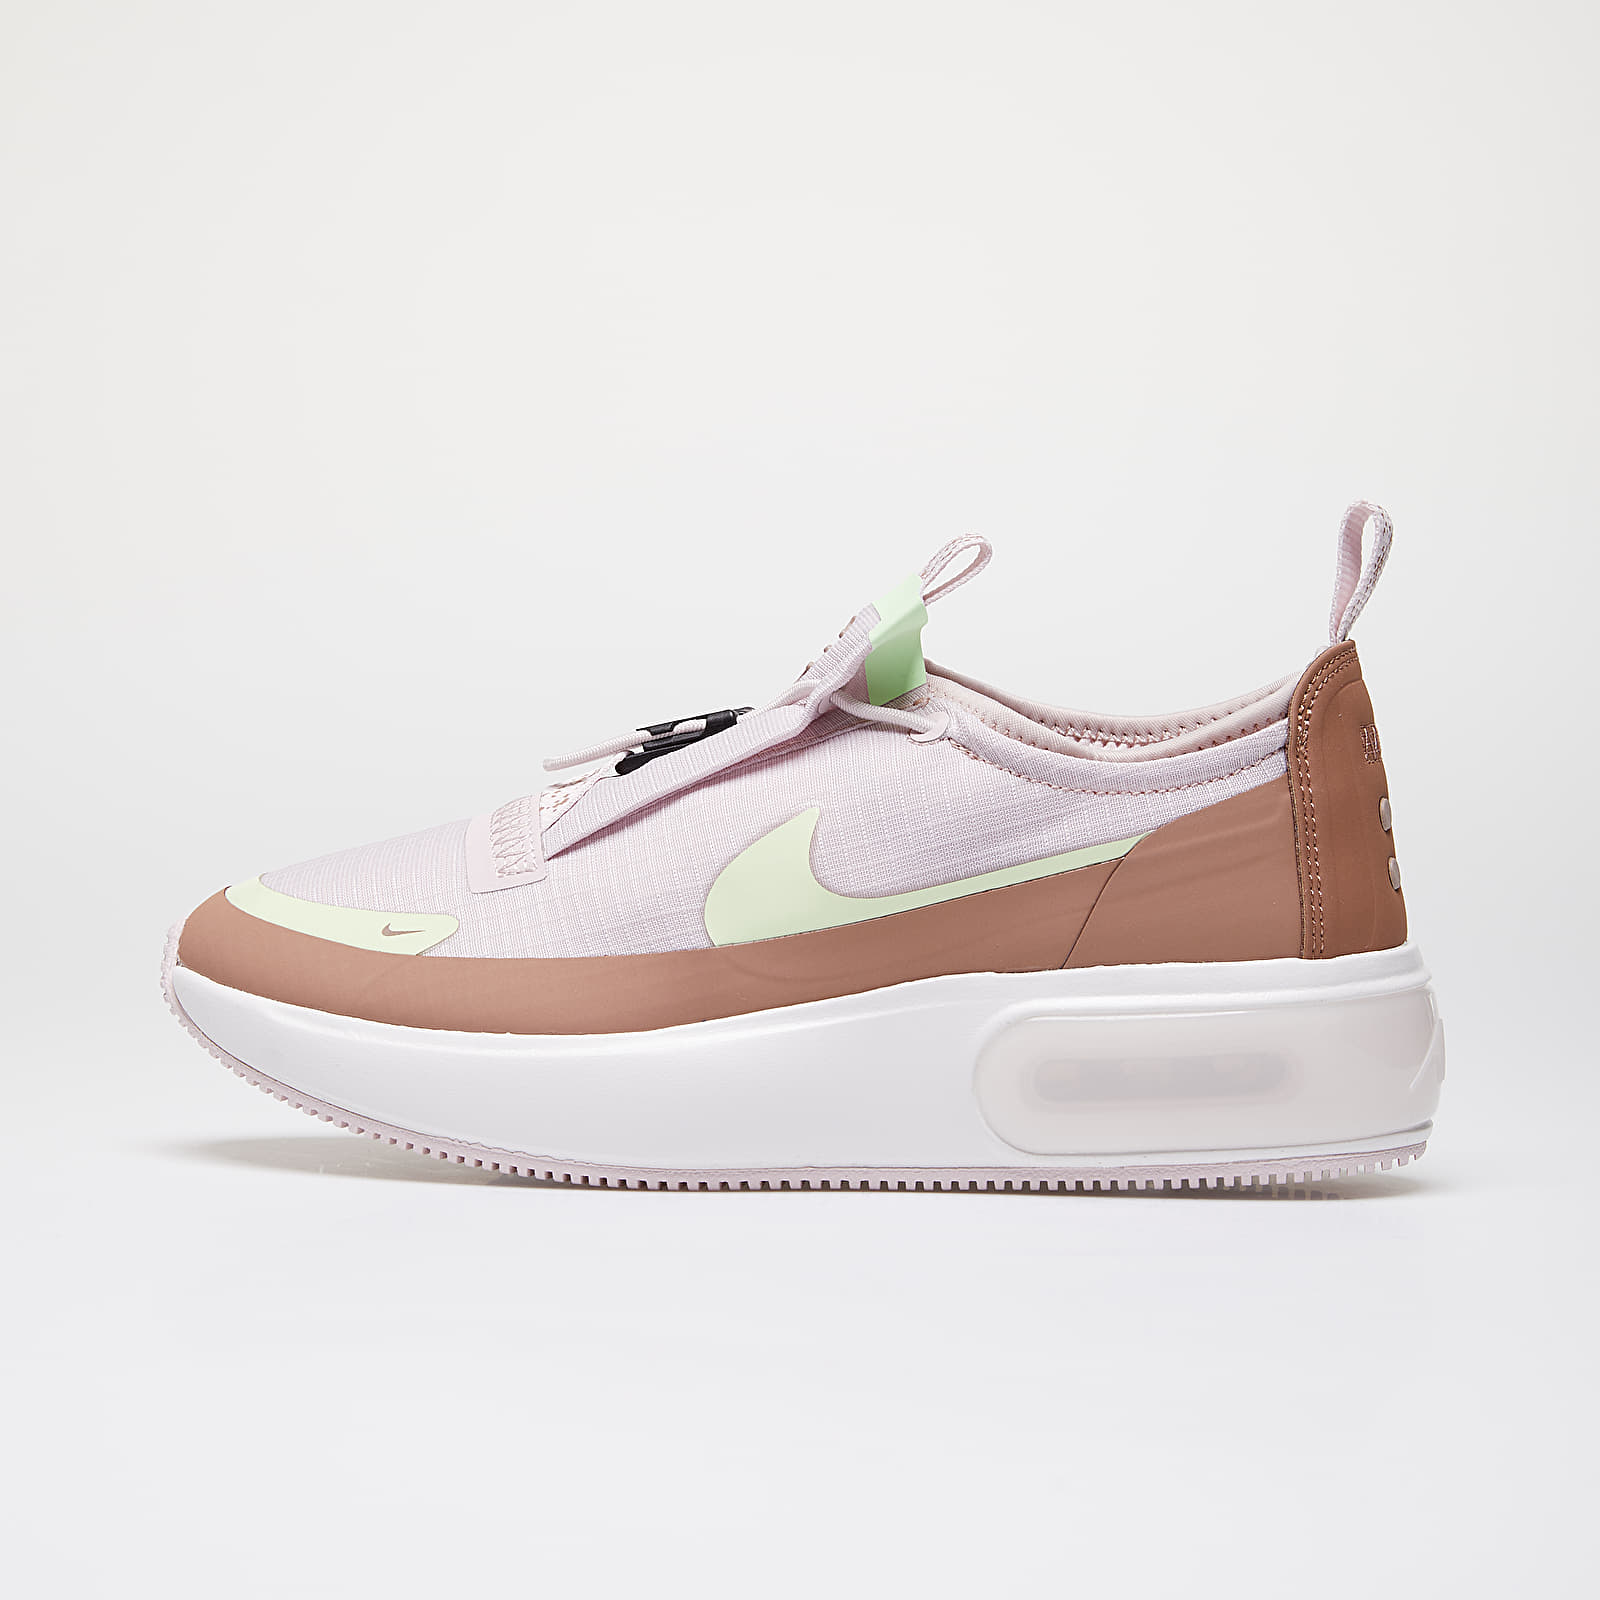 Chaussures et baskets femme Nike W Air Max Dia Winter Barely Rose/ Desert Dust-Barely Volt